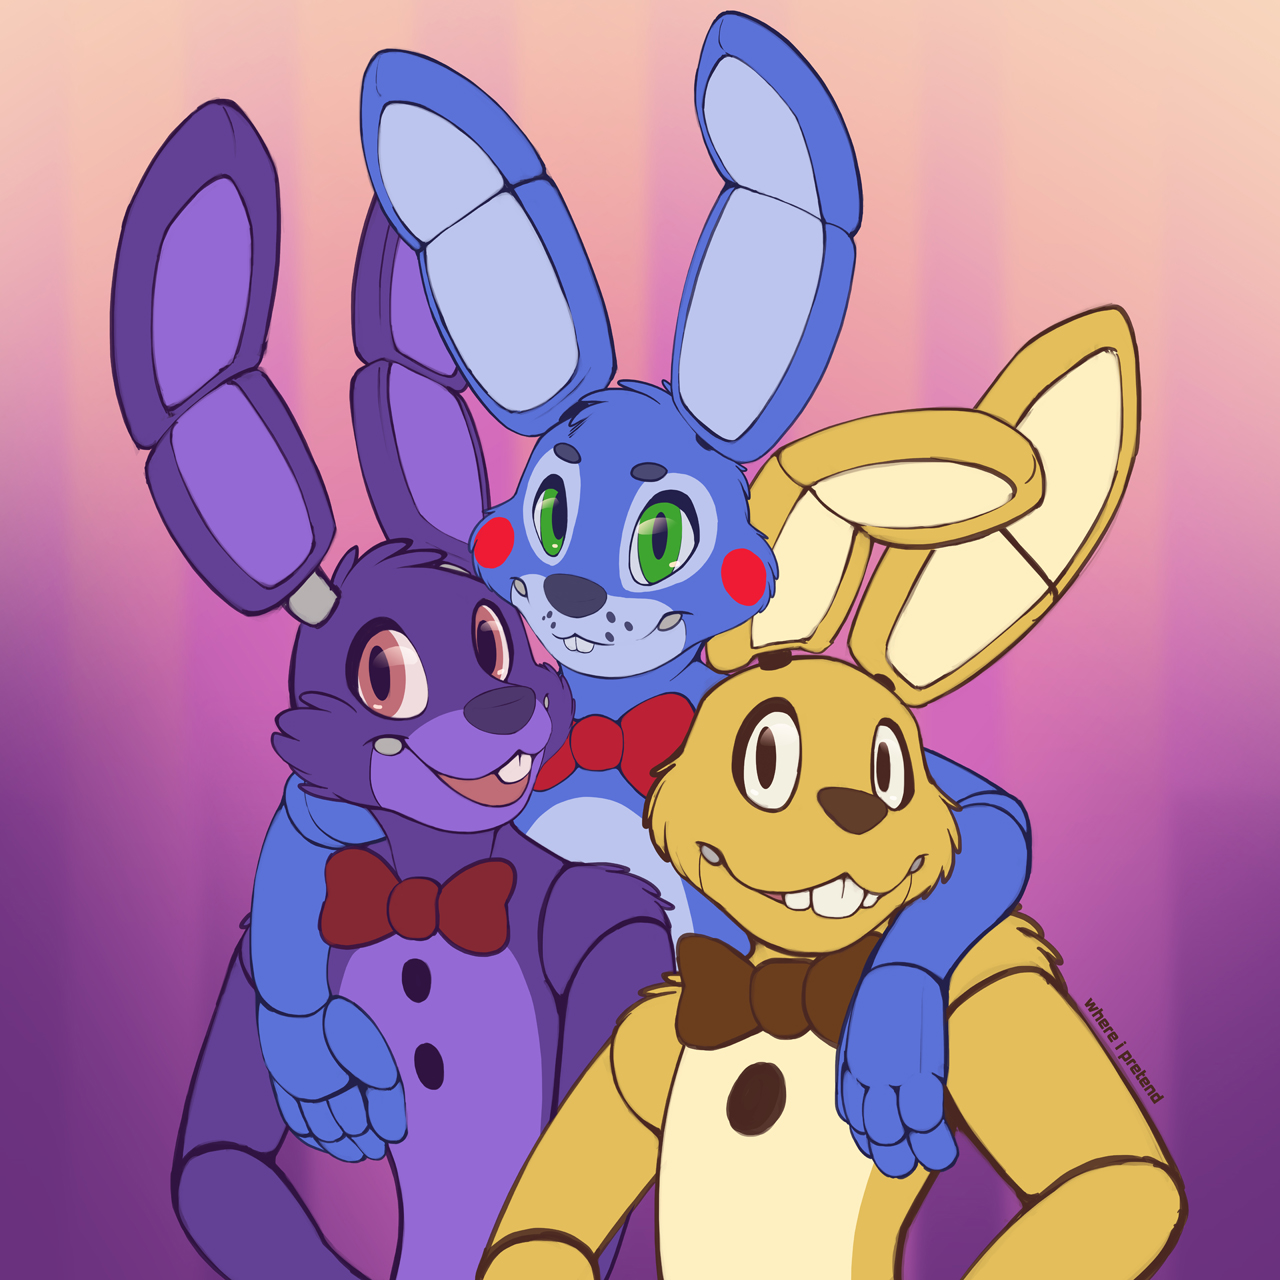 Five Nights At Freddy's Bonnie Animated best bonnie bros. | five nights at freddy's | know your meme